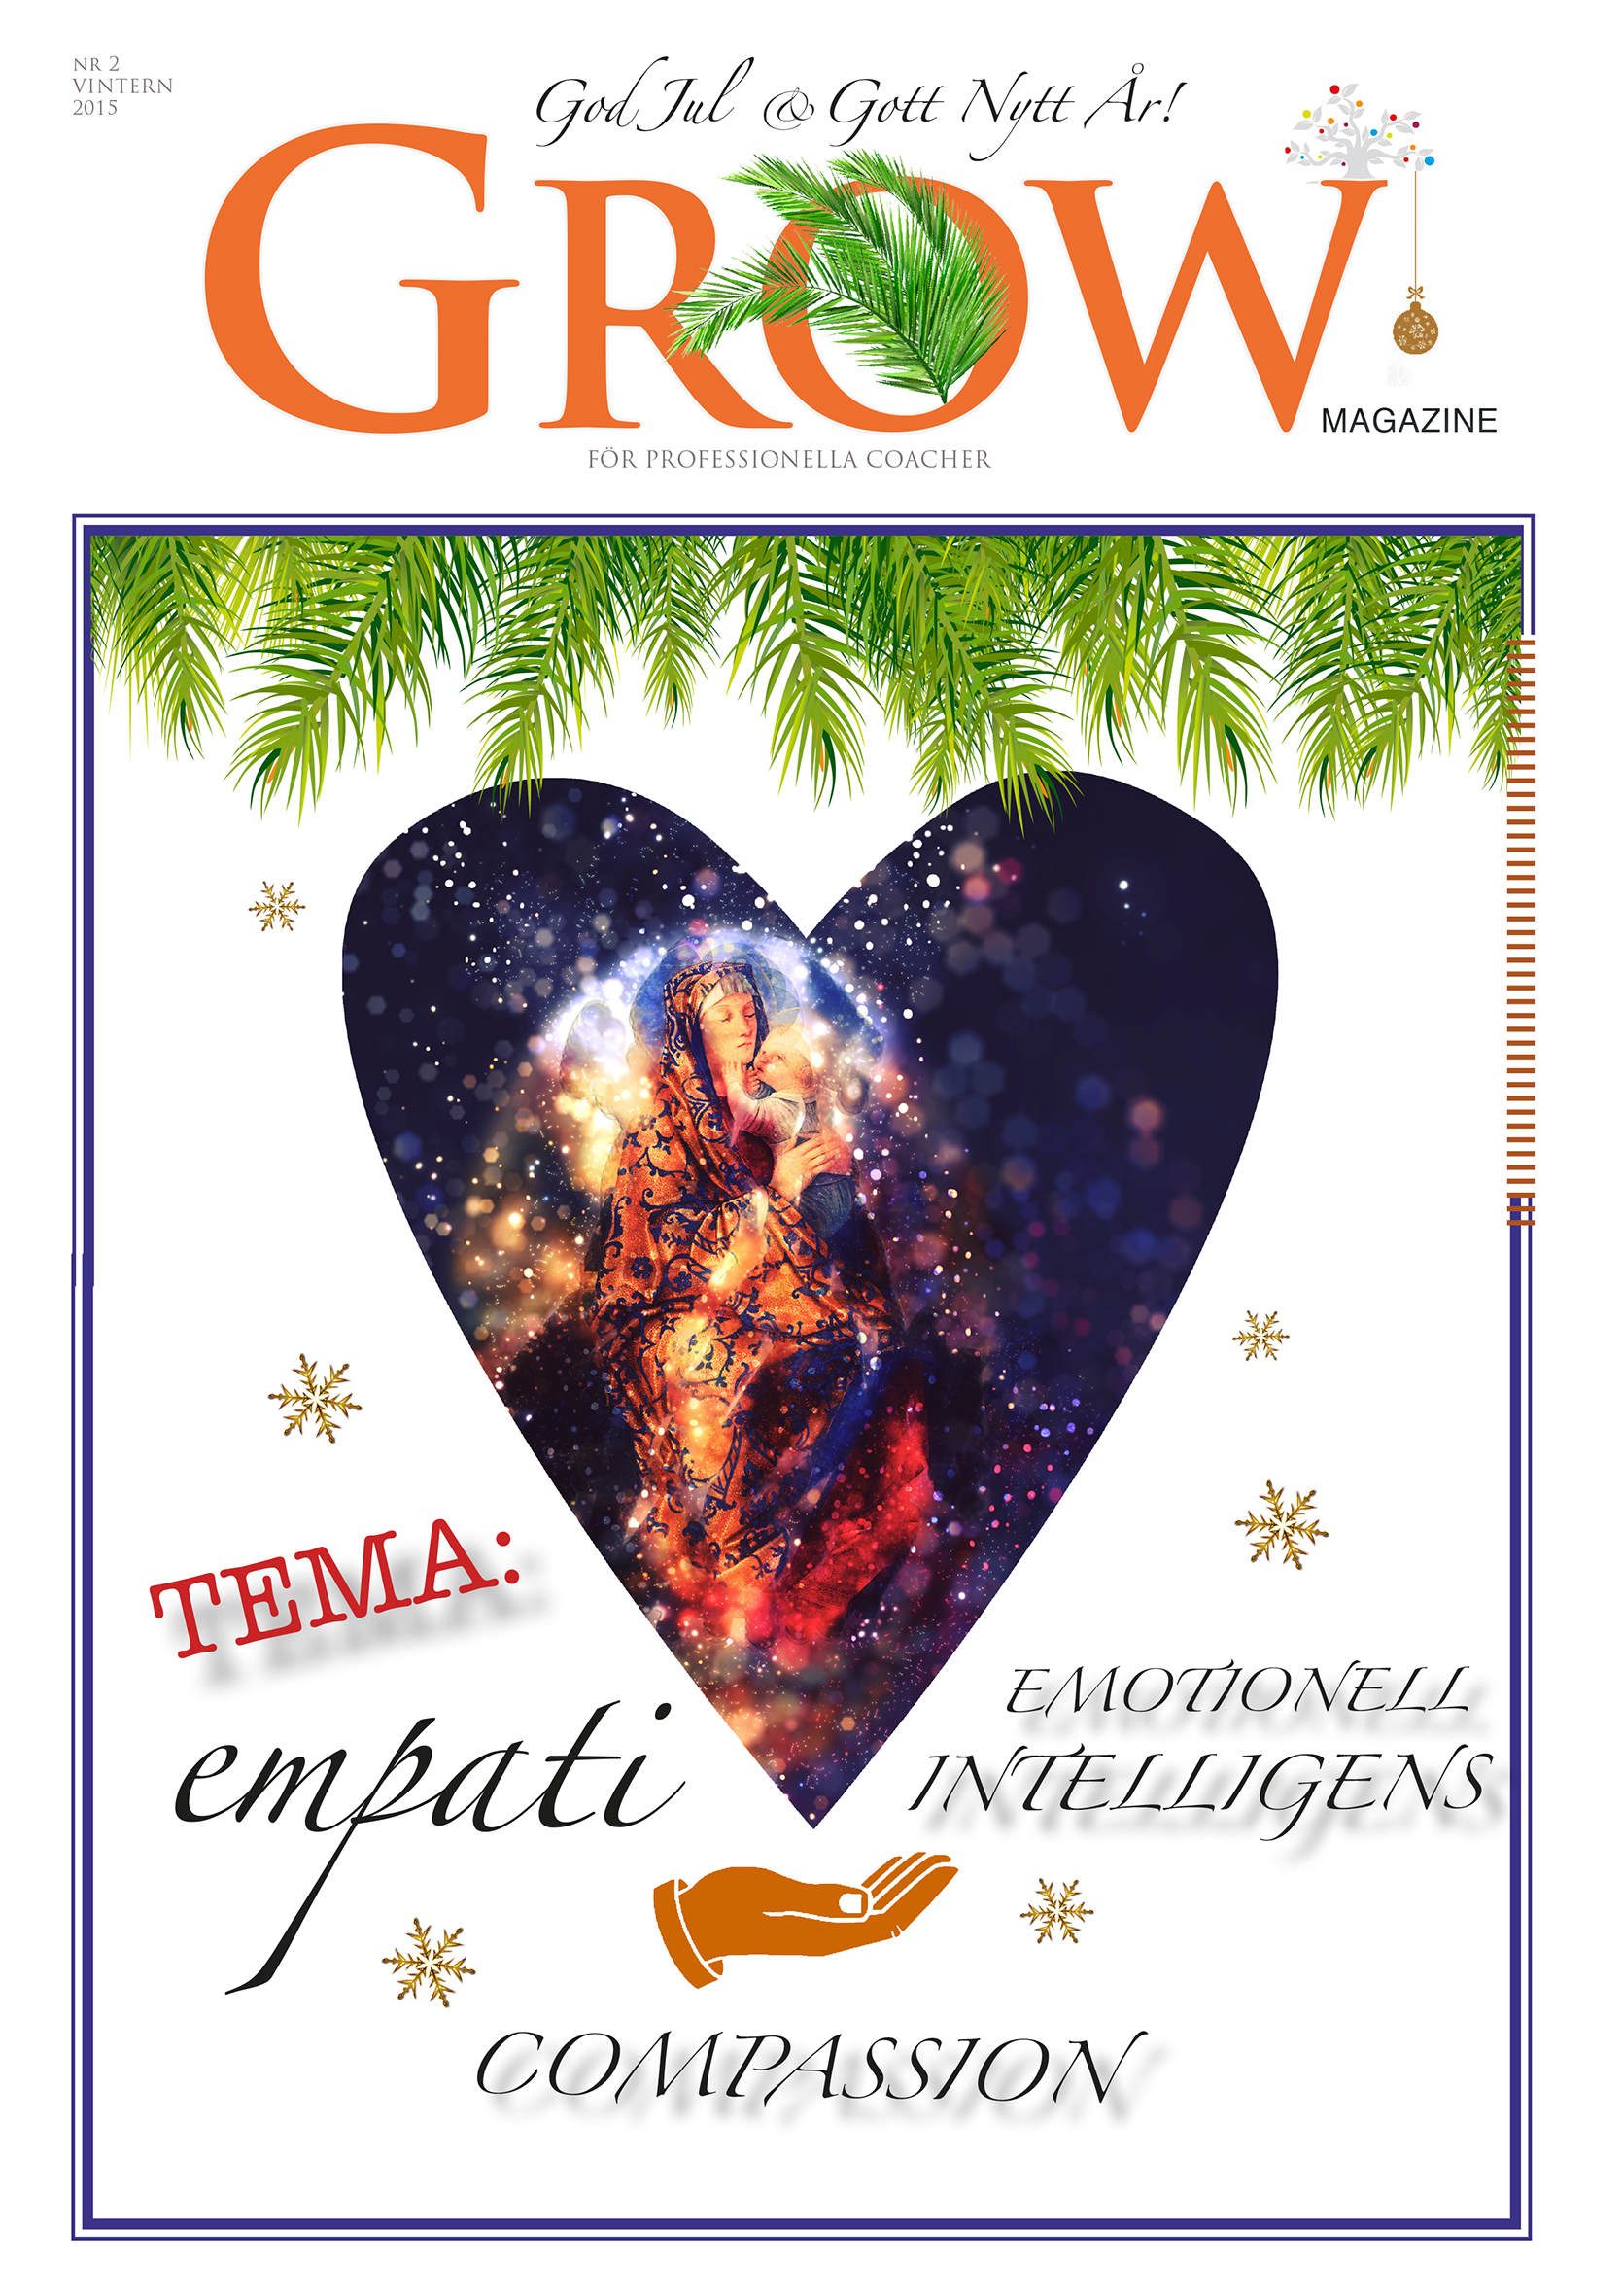 Omslag GROW magazine vol 2 Tema: Empati, Emotionell Intelligens & Compassion